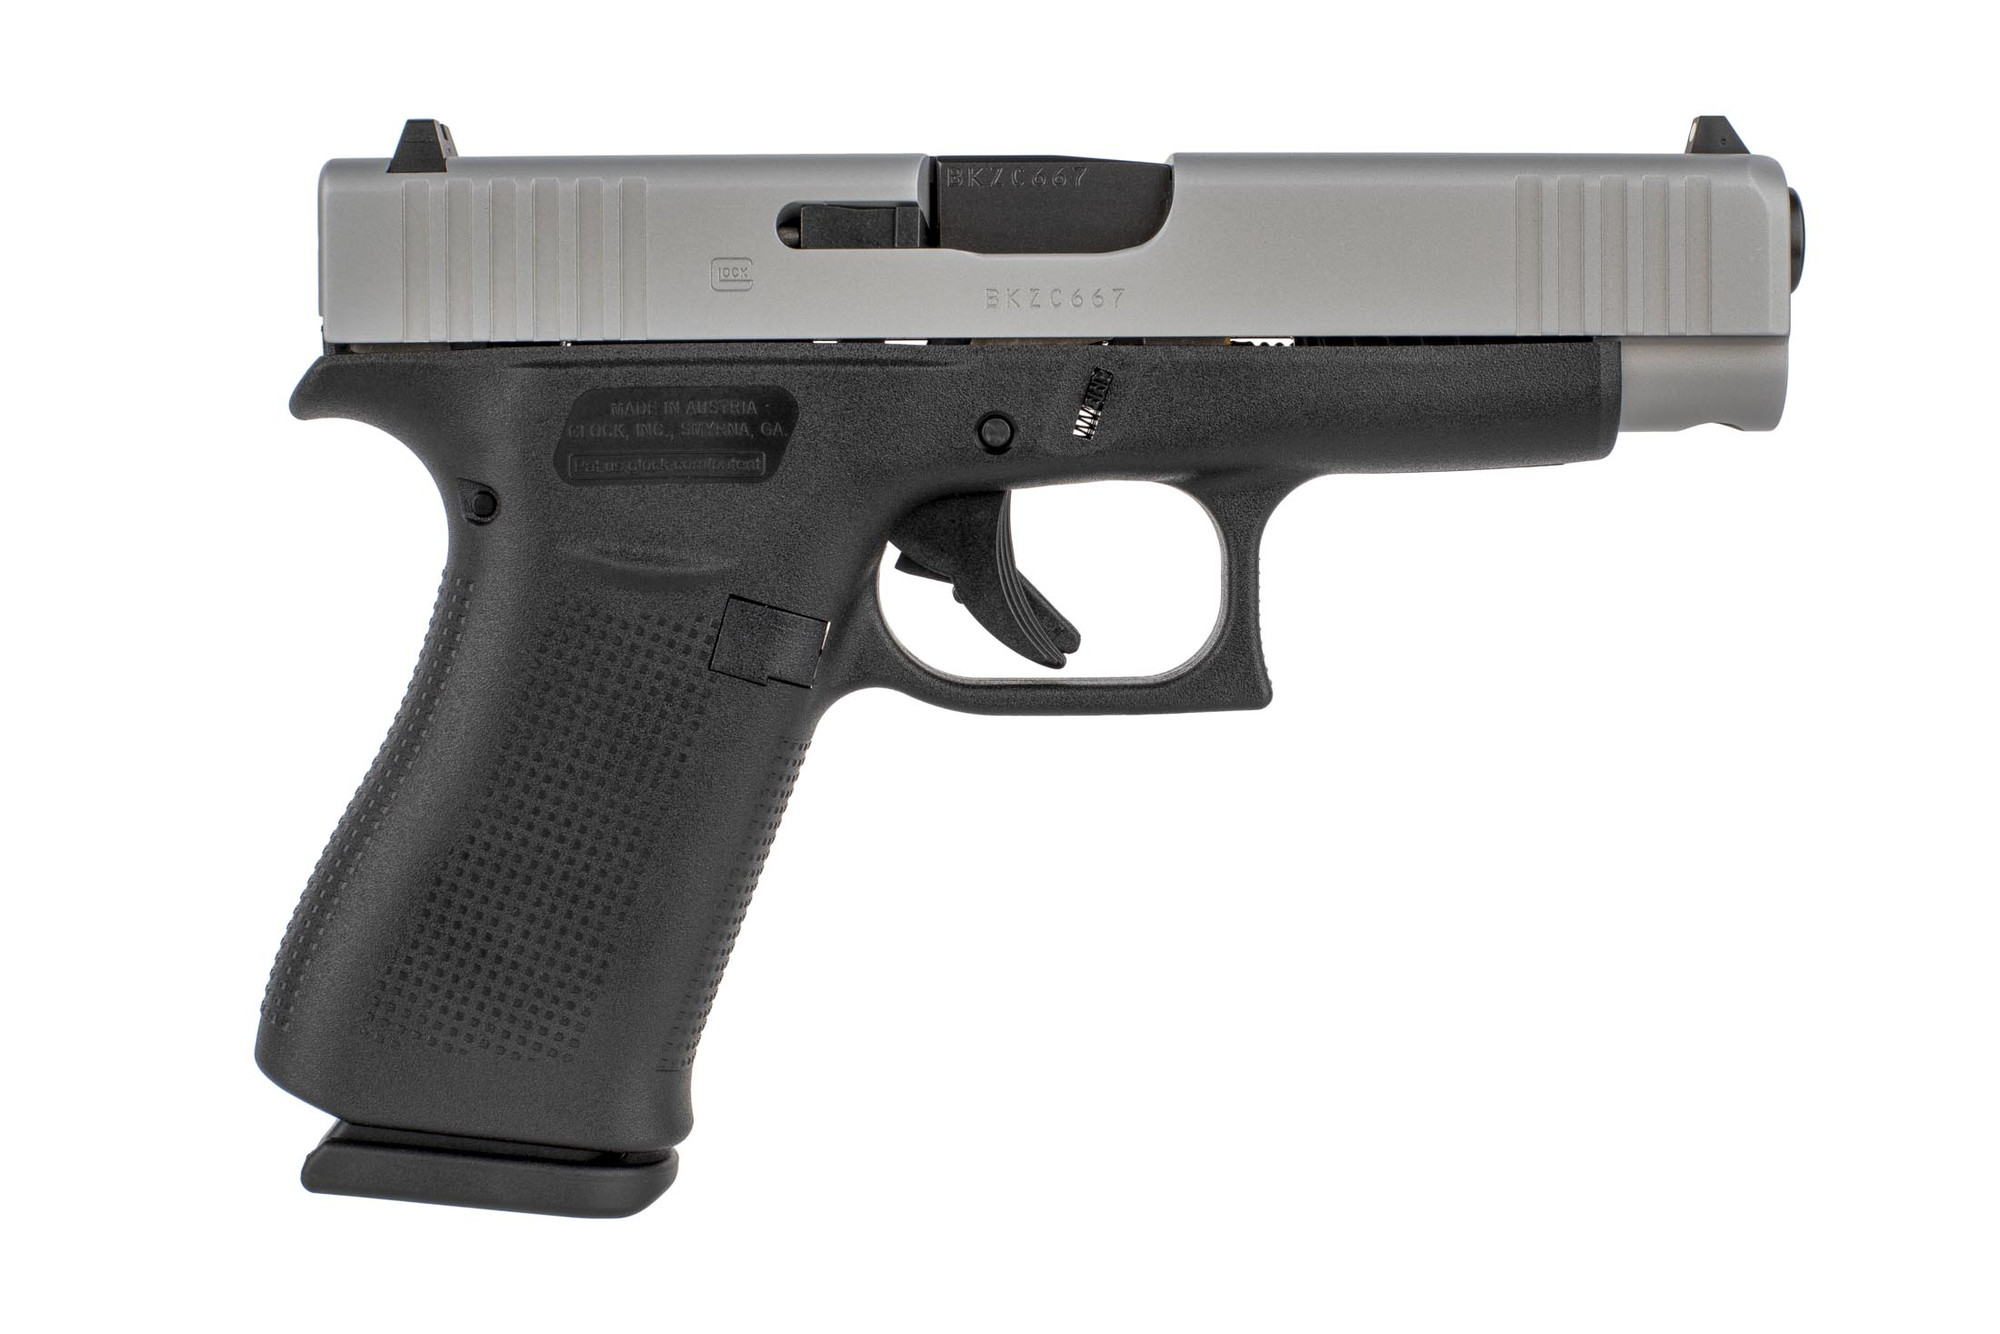 Glock 48 Blue Label 9mm pistol with a silver nDLC slide finish